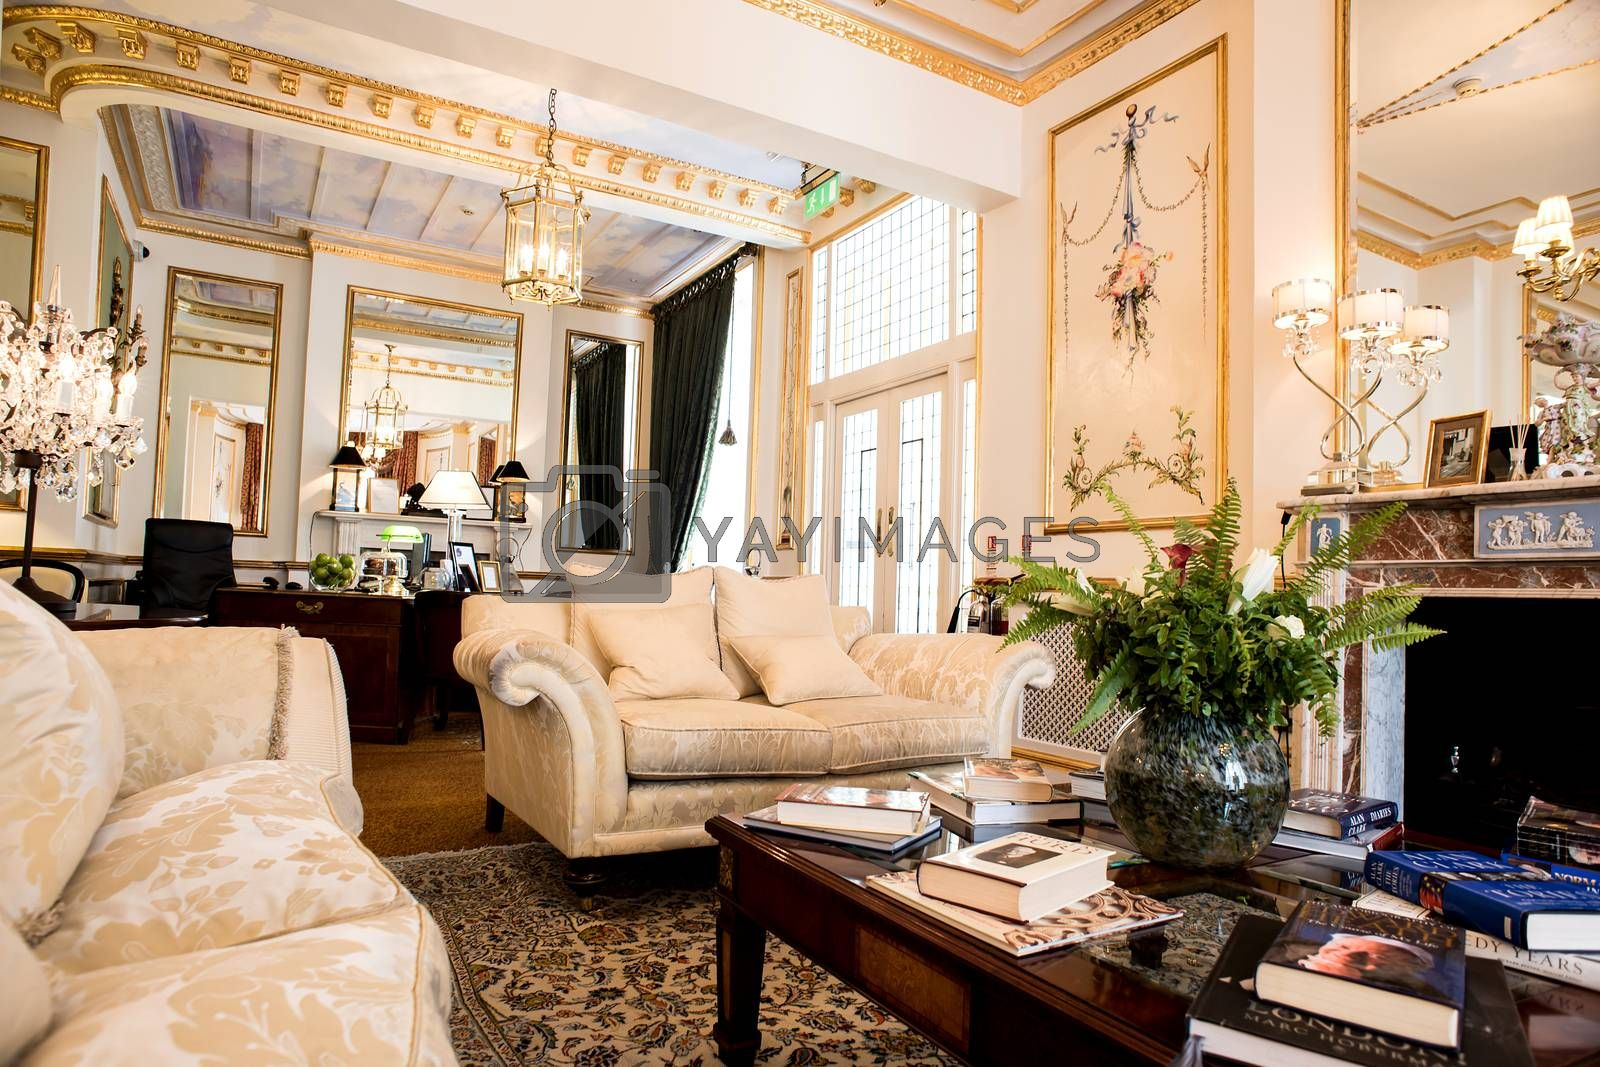 Decorated living room deign with furniture